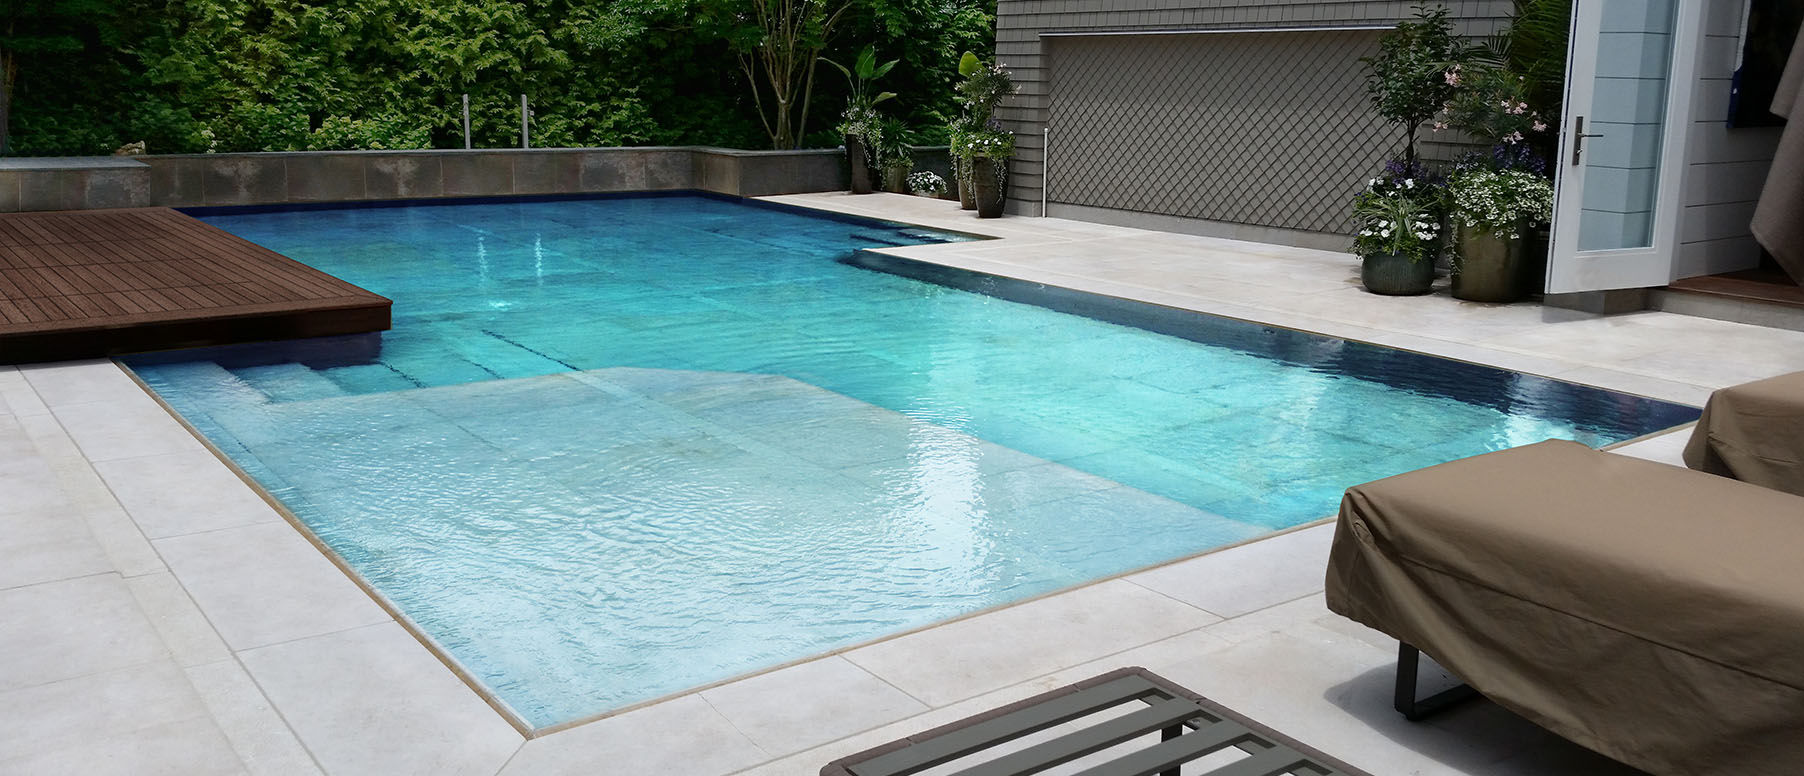 Movable Floors for Swimming Pools | Automatic Pool Covers ...